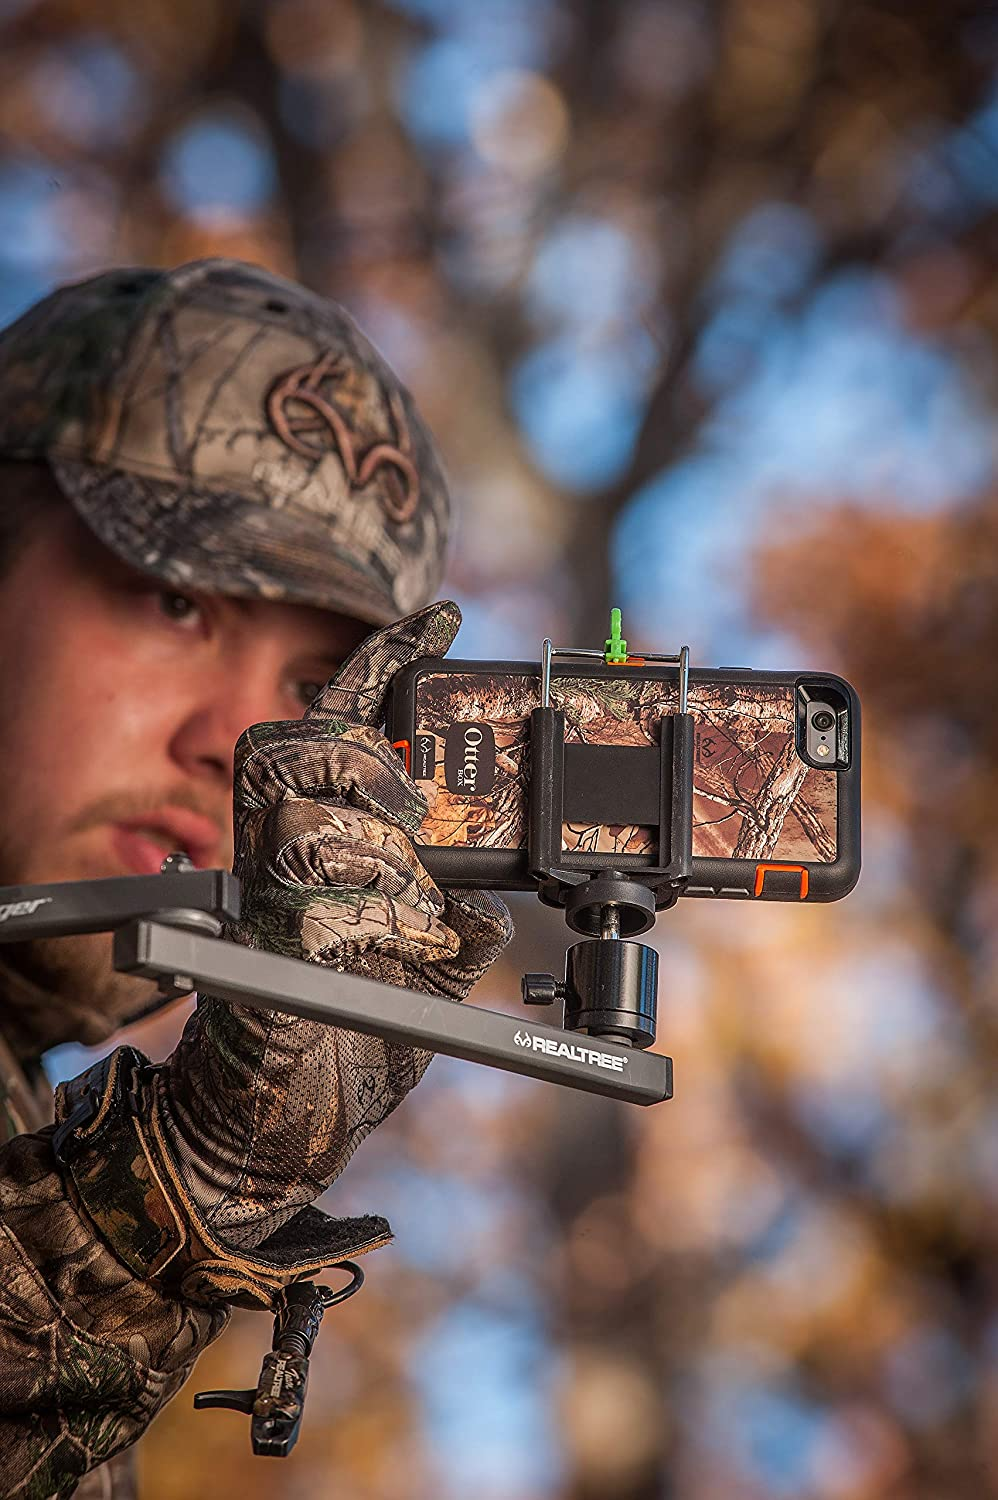 Realtree Outfitters Realtree 34 EZ Mount//EZ PIC Cell Phone Holder Combo Black//Green Jordan Outdoor Enterprises 9974 NC